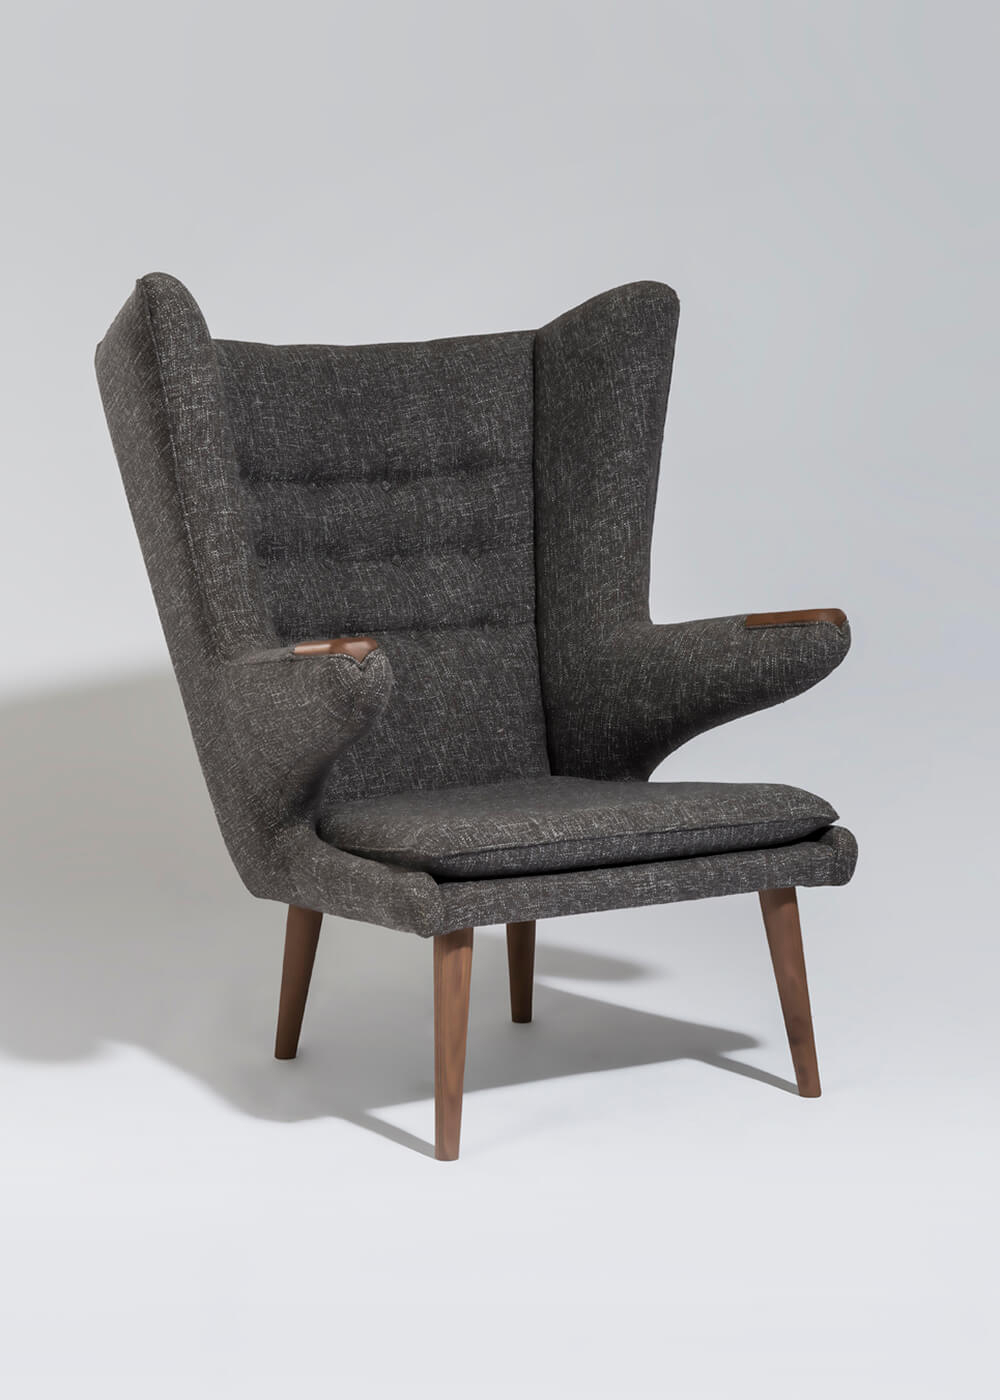 Commercial Furniture In Gordon Arm Sofa Chairs (View 11 of 25)